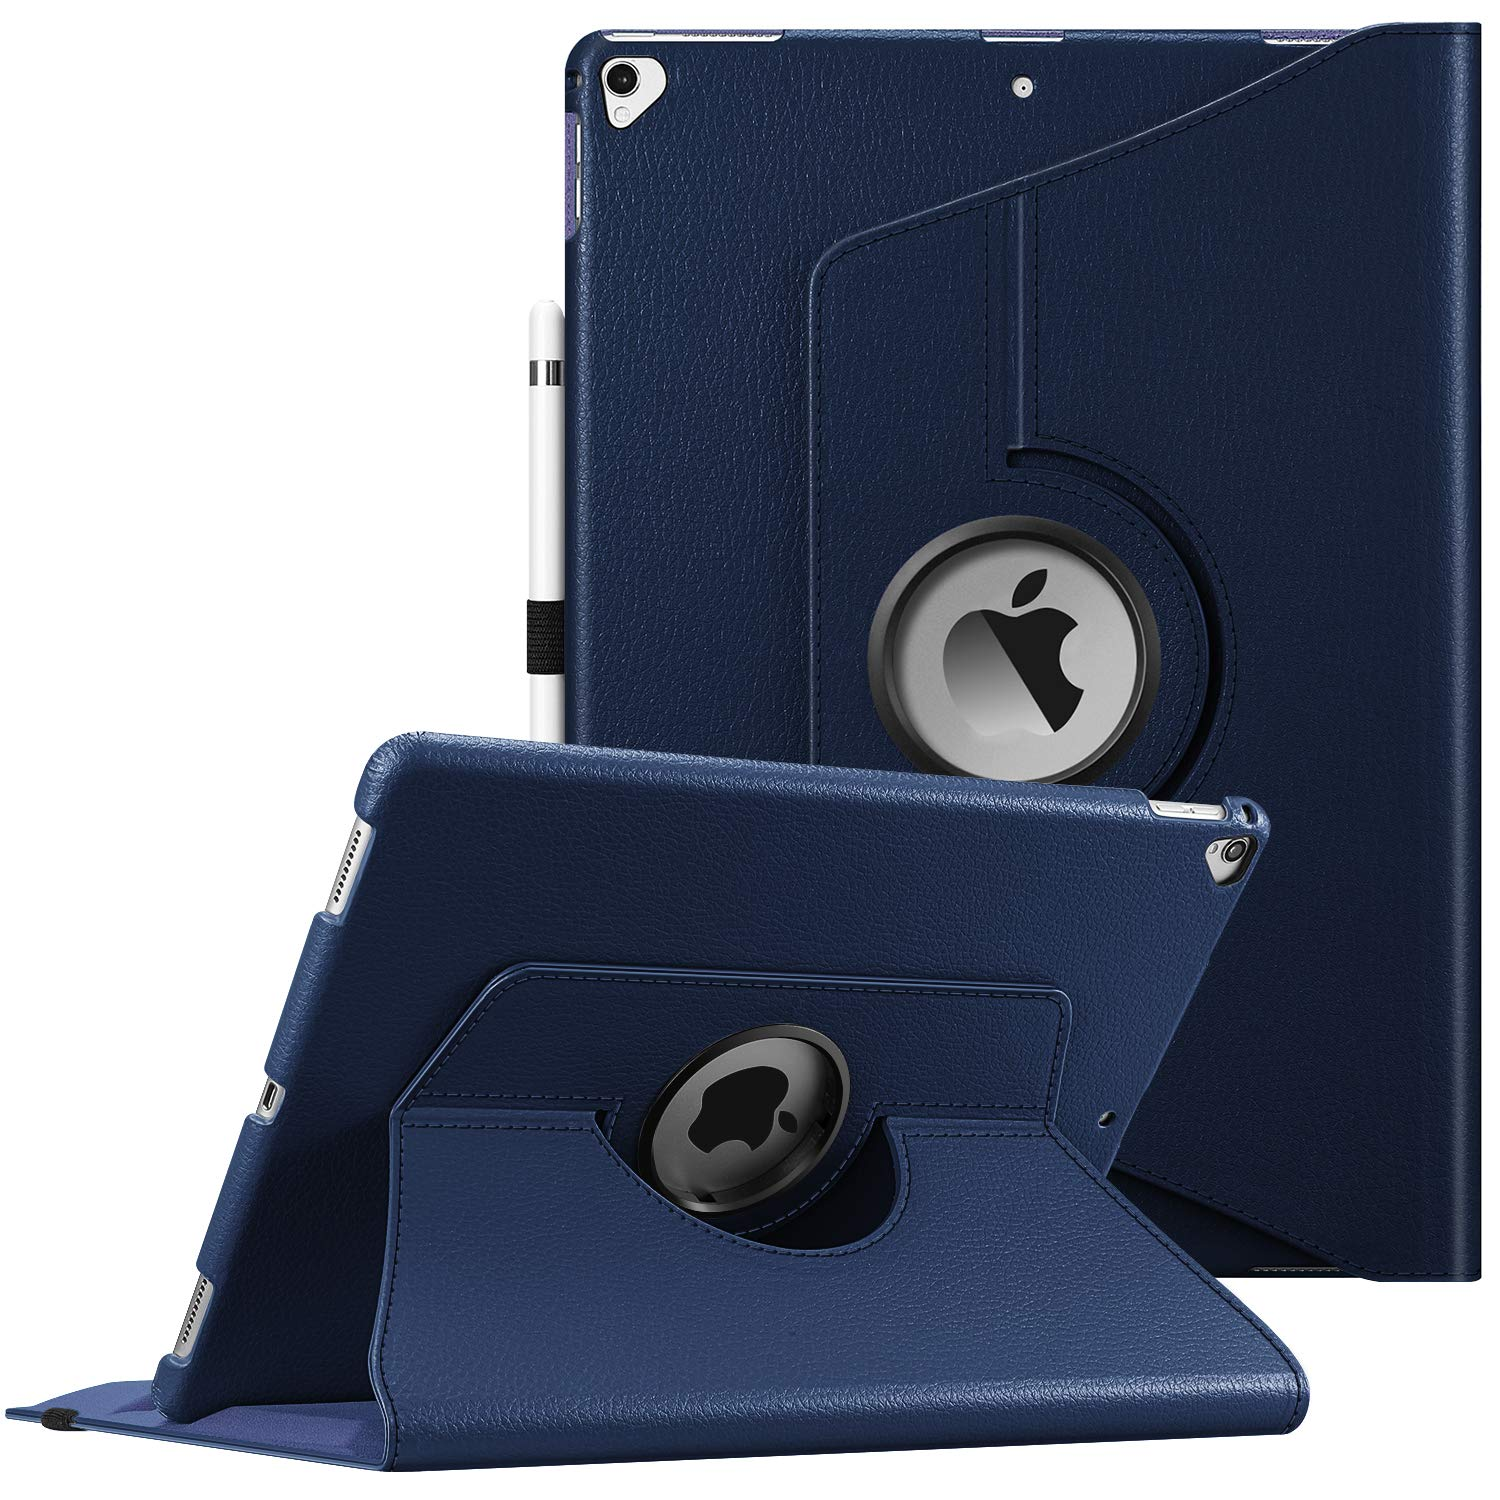 Fintie Rotating Case for iPad Pro 12.9 (2nd Gen) 2017 / iPad Pro 12.9 (1st Gen) 2015-360 Degree Rotating Stand Case with Smart Protective Cover Auto Sleep/Wake, Navy